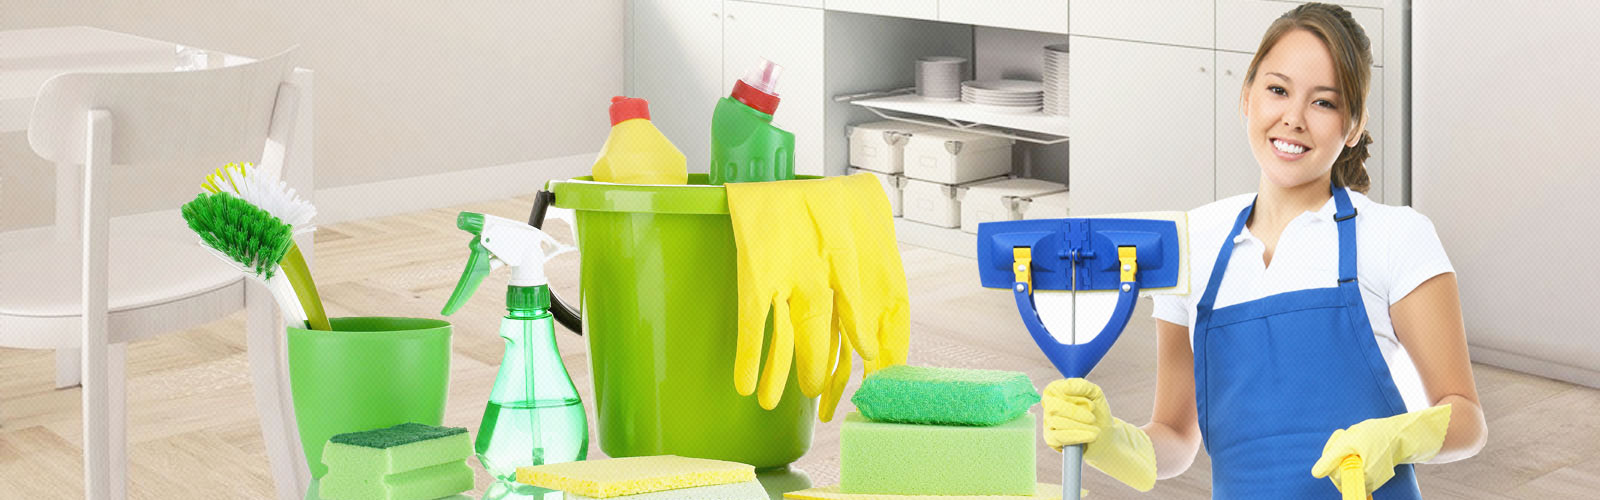 End of Lease Cleaning Services in Adelaide